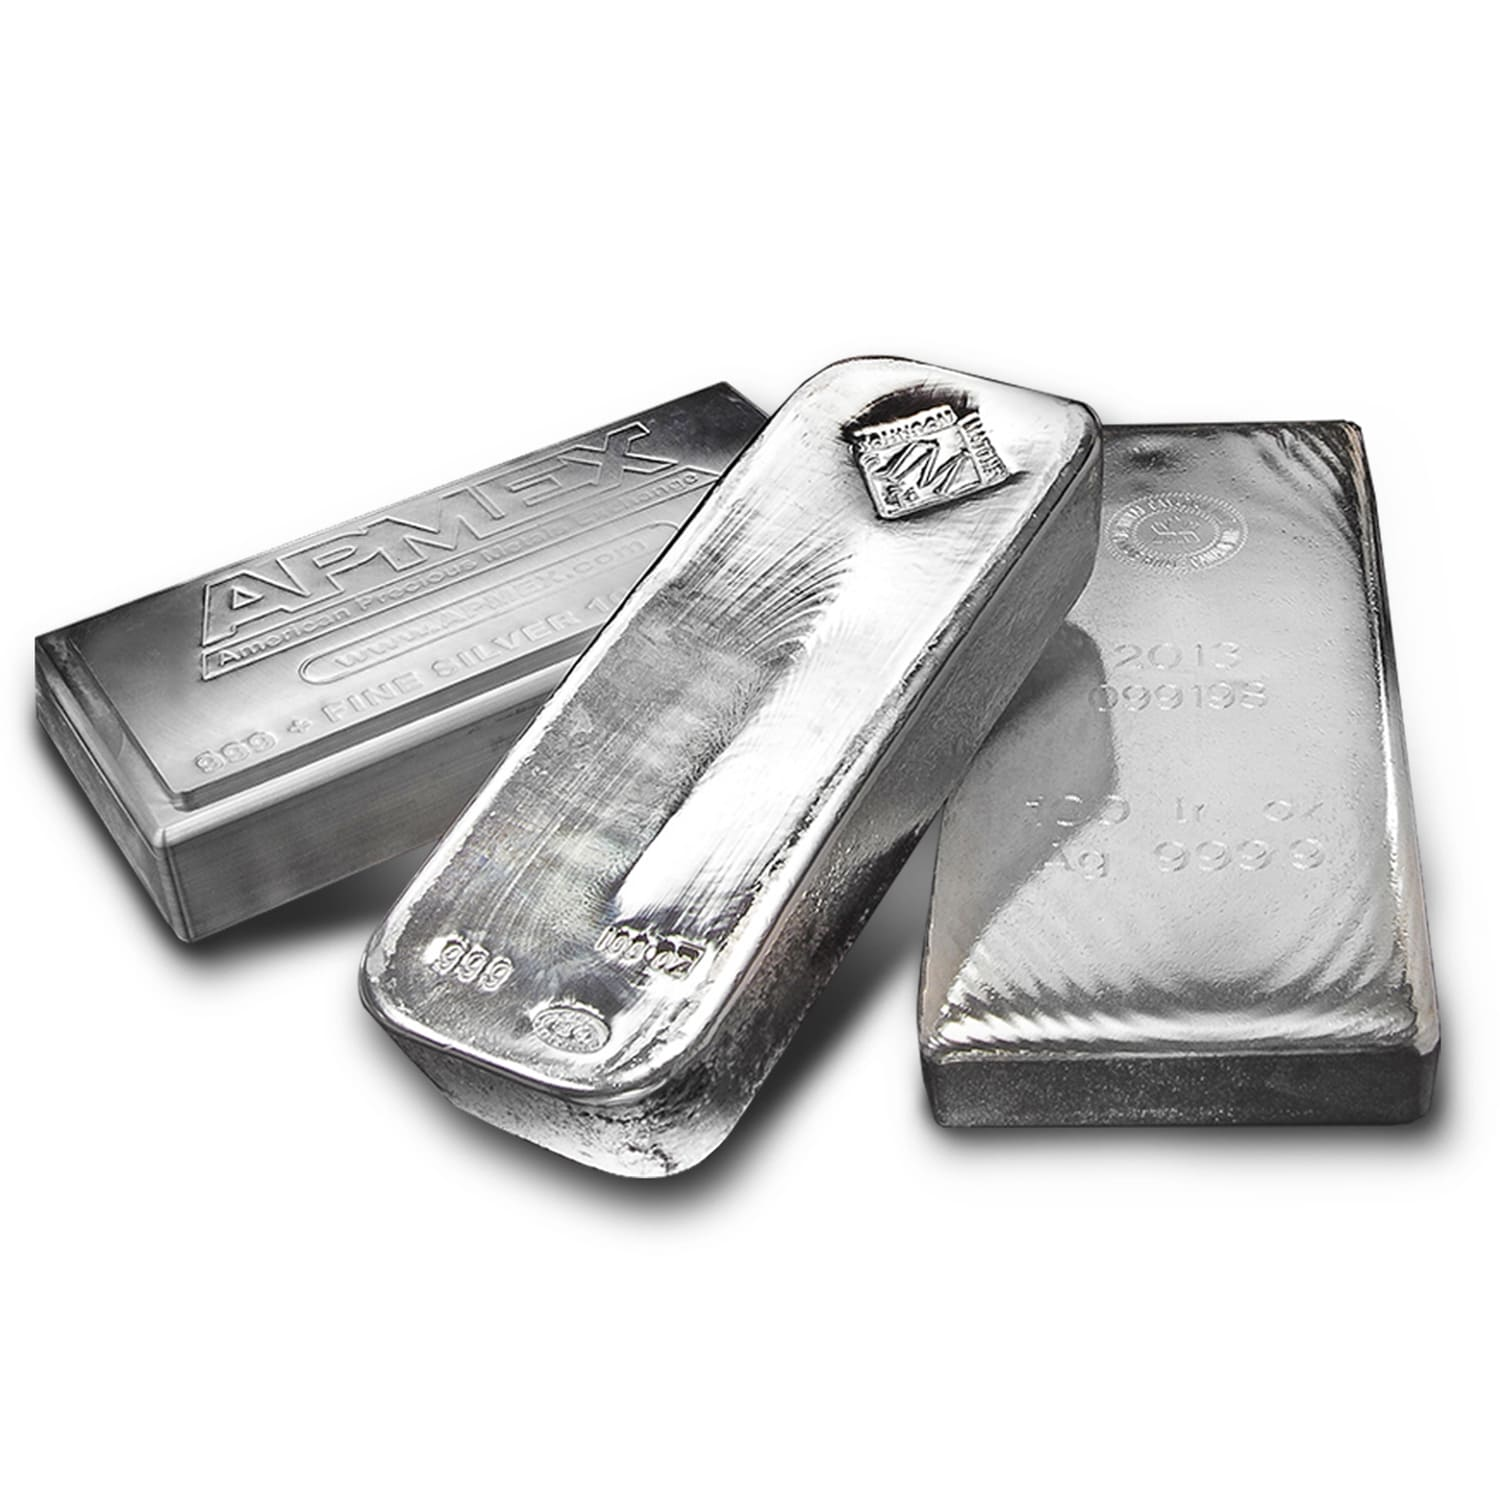 102.08 oz Silver Bar - Secondary Market